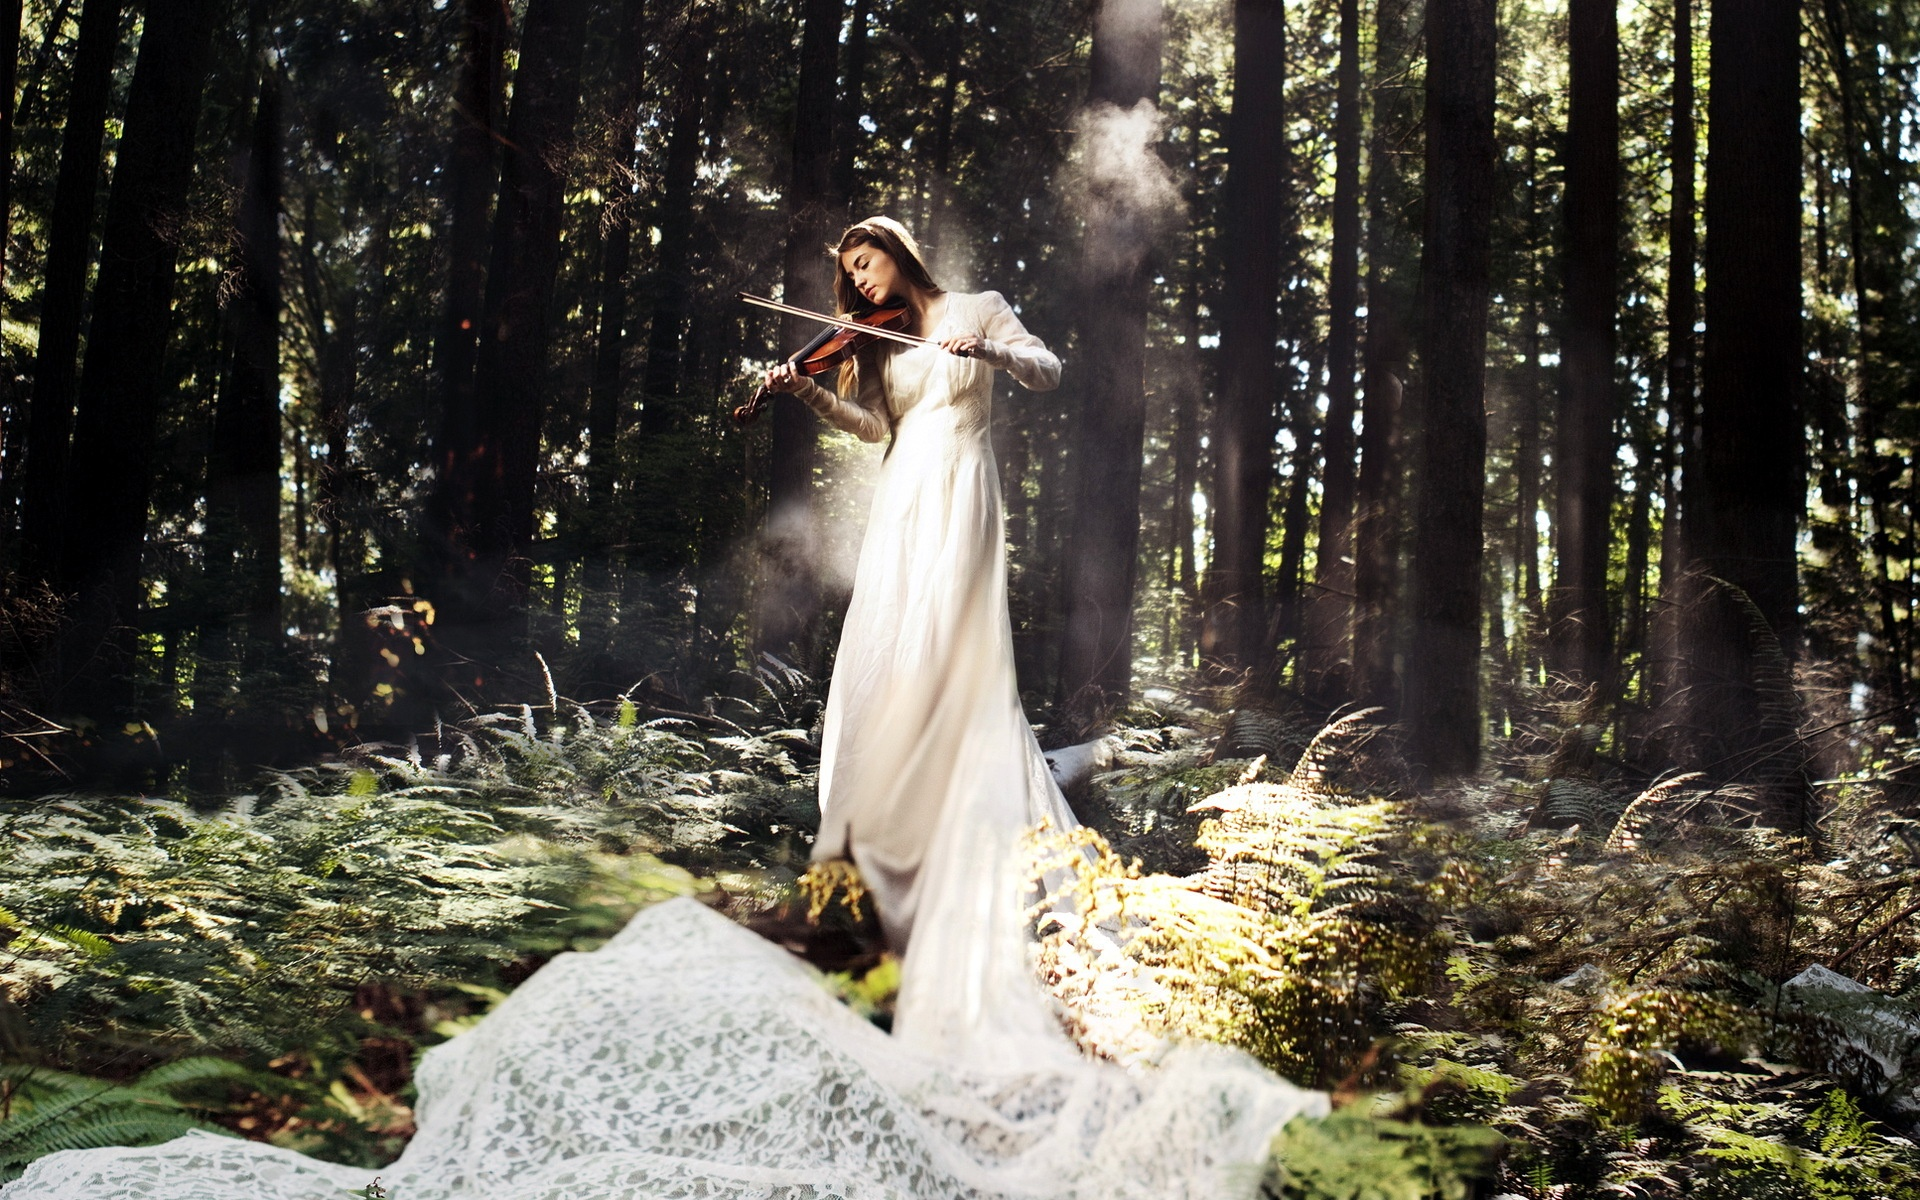 Beautiful Anime Girl Fantasy Forest Wallpaper White Dress Music Girl Play Violin In The Forest